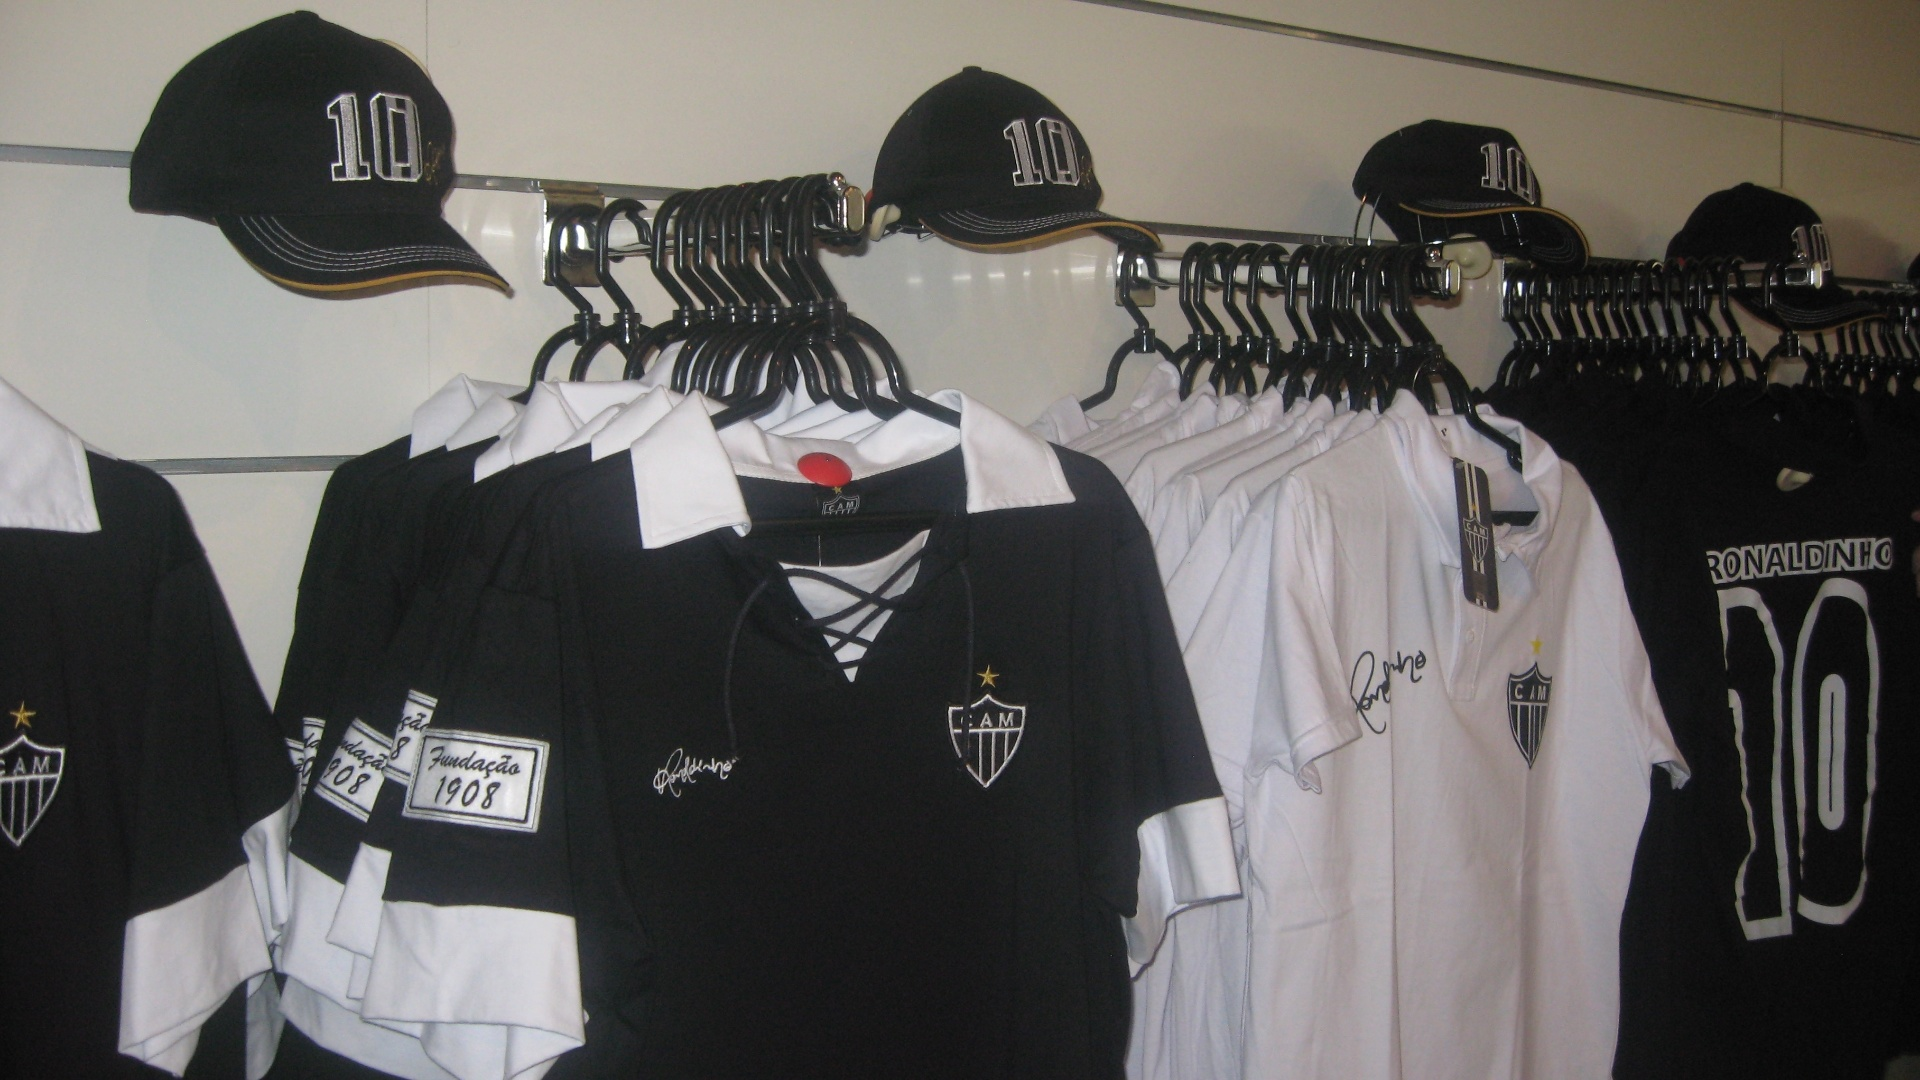 Camisas com a assinatura de Ronaldinho Gacho so expostas na Loja do Galo